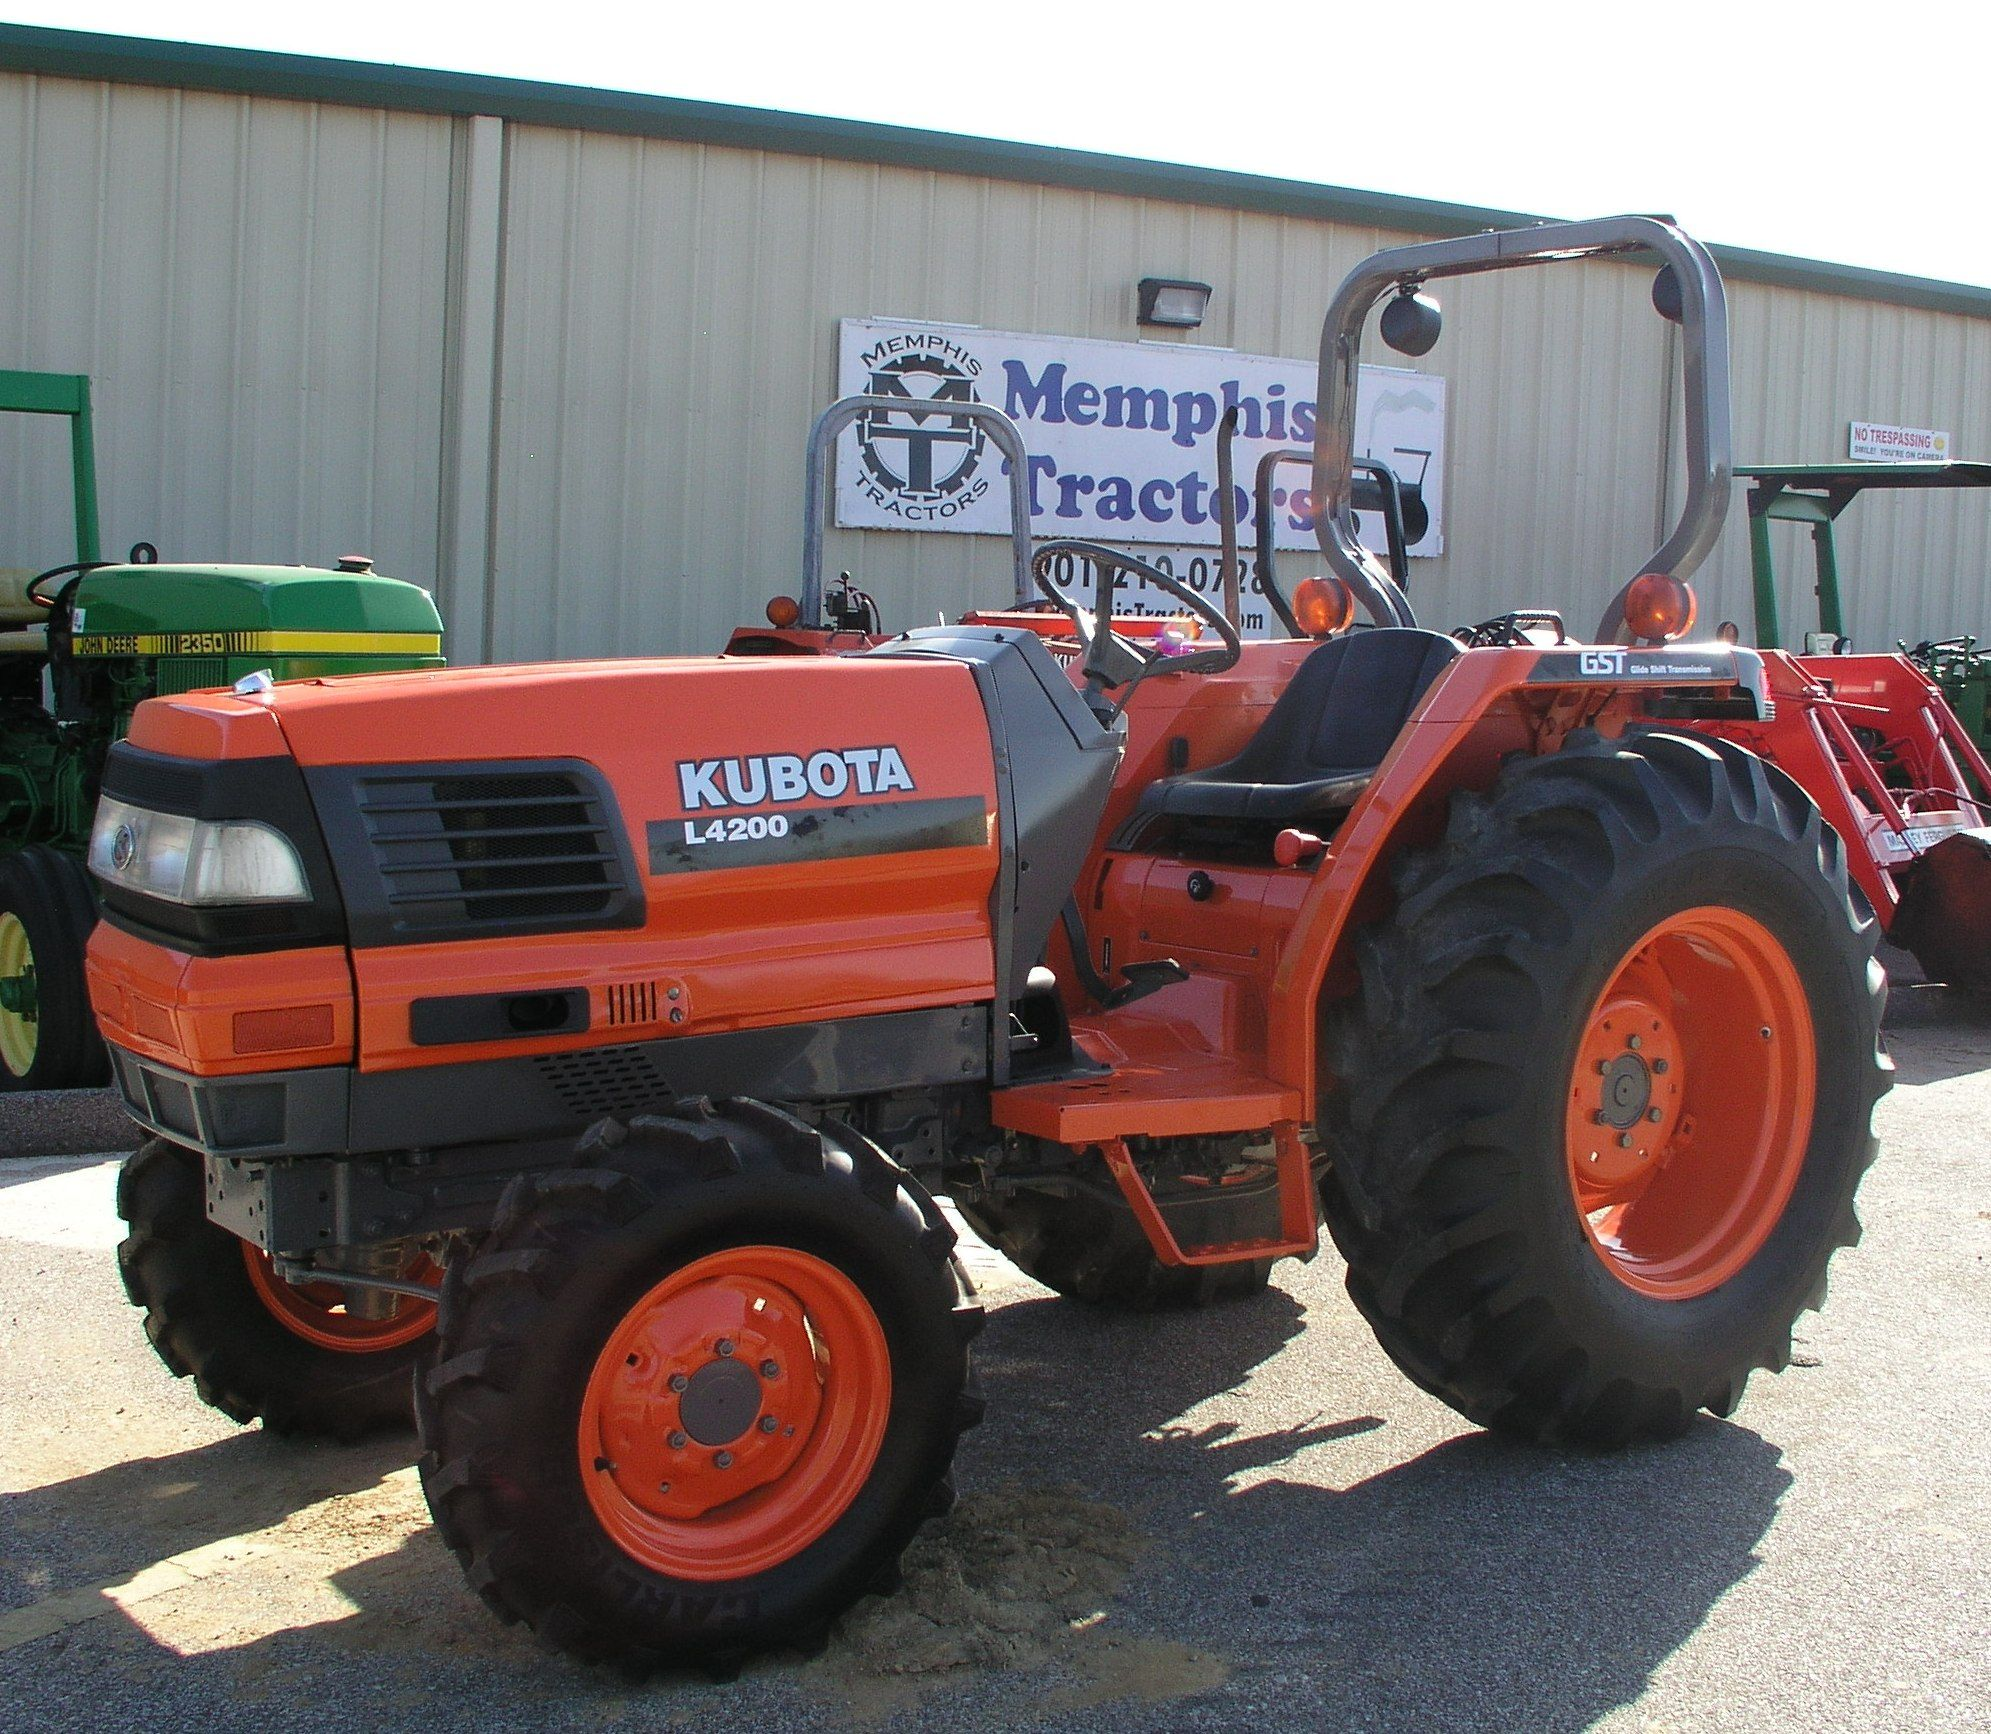 kubota l4200 tractor mania pinterest tractor and kubota rh pinterest com Kubota L3710 Kubota L4200 Tractor Specs